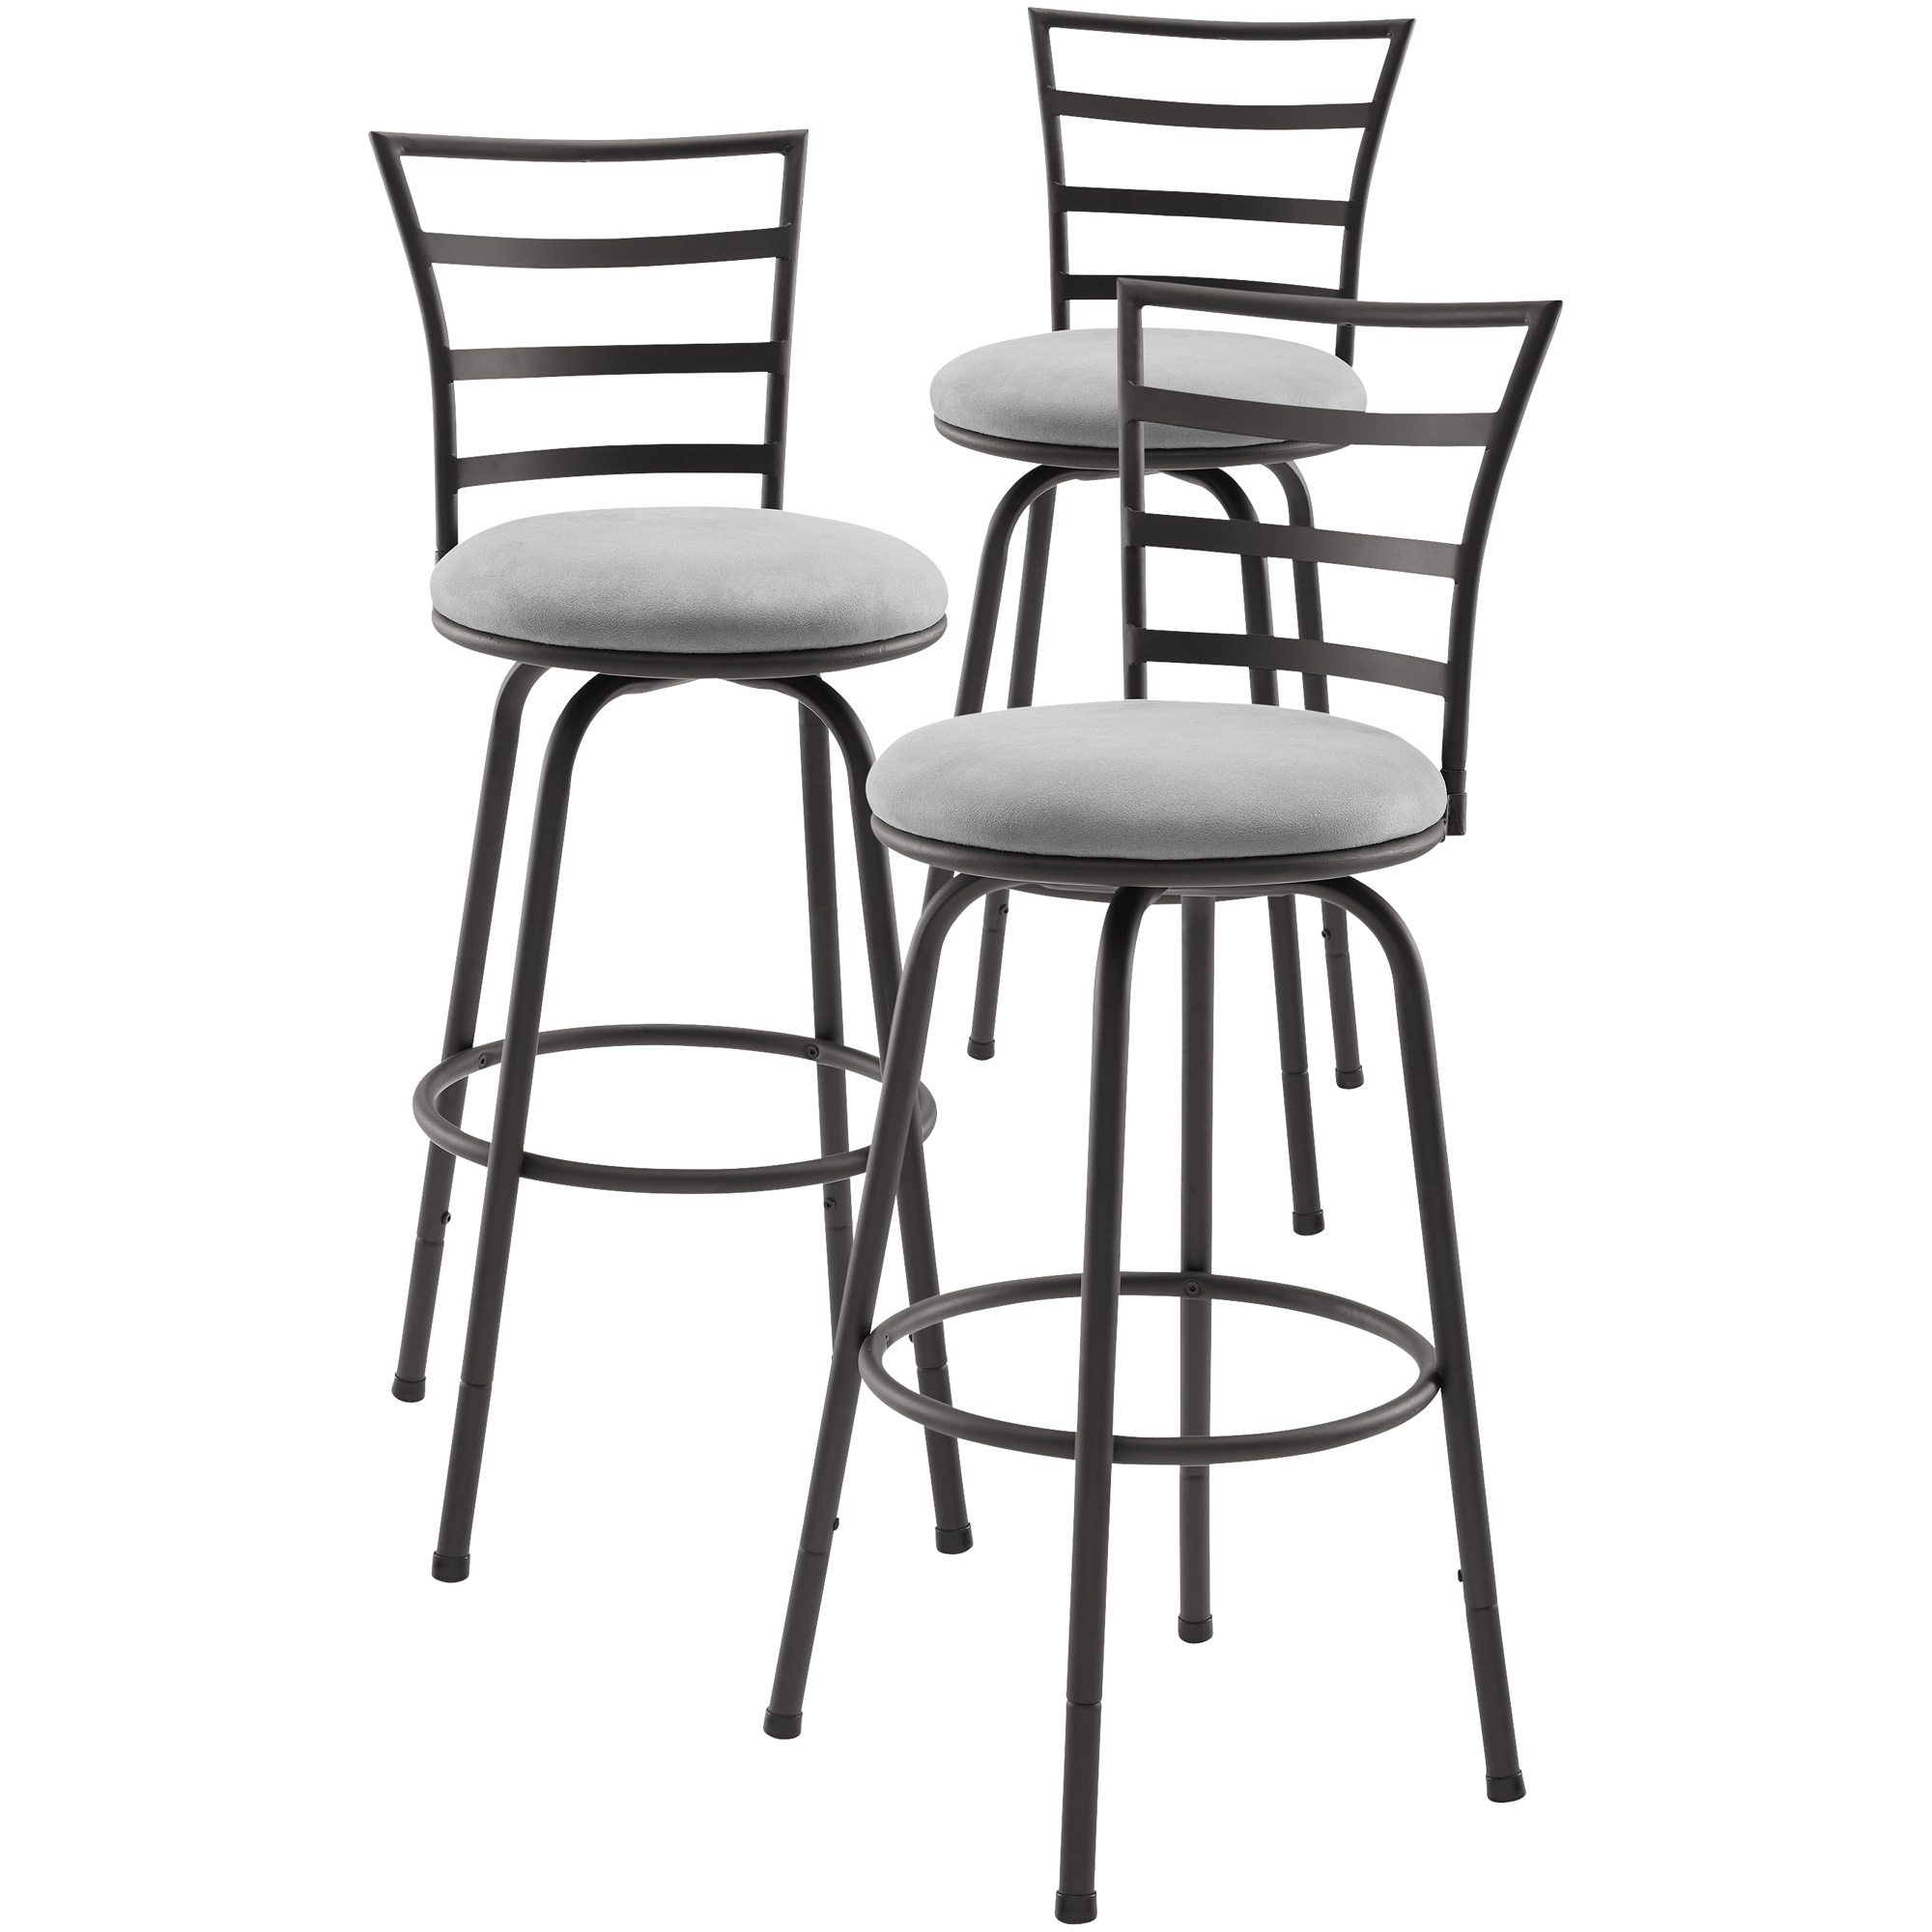 Outstanding Callie 3 Pack Barstools Products In 2019 Bar Stools Alphanode Cool Chair Designs And Ideas Alphanodeonline